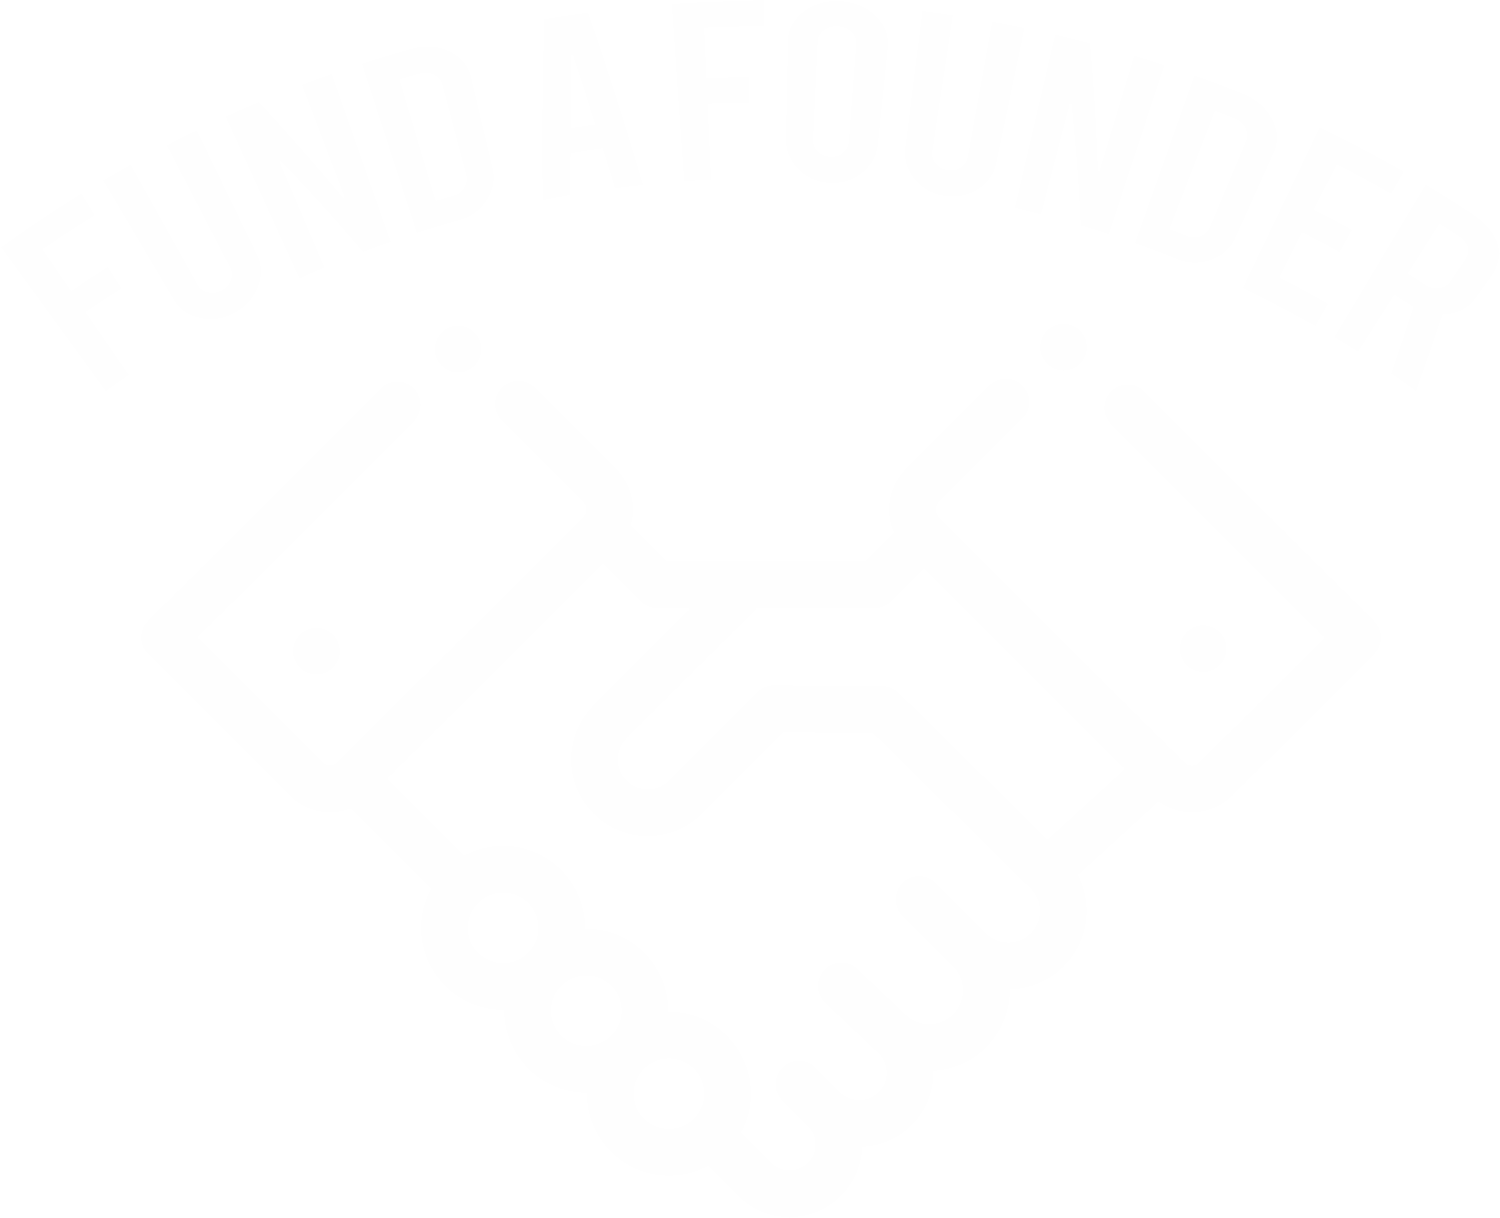 Fund a Founder